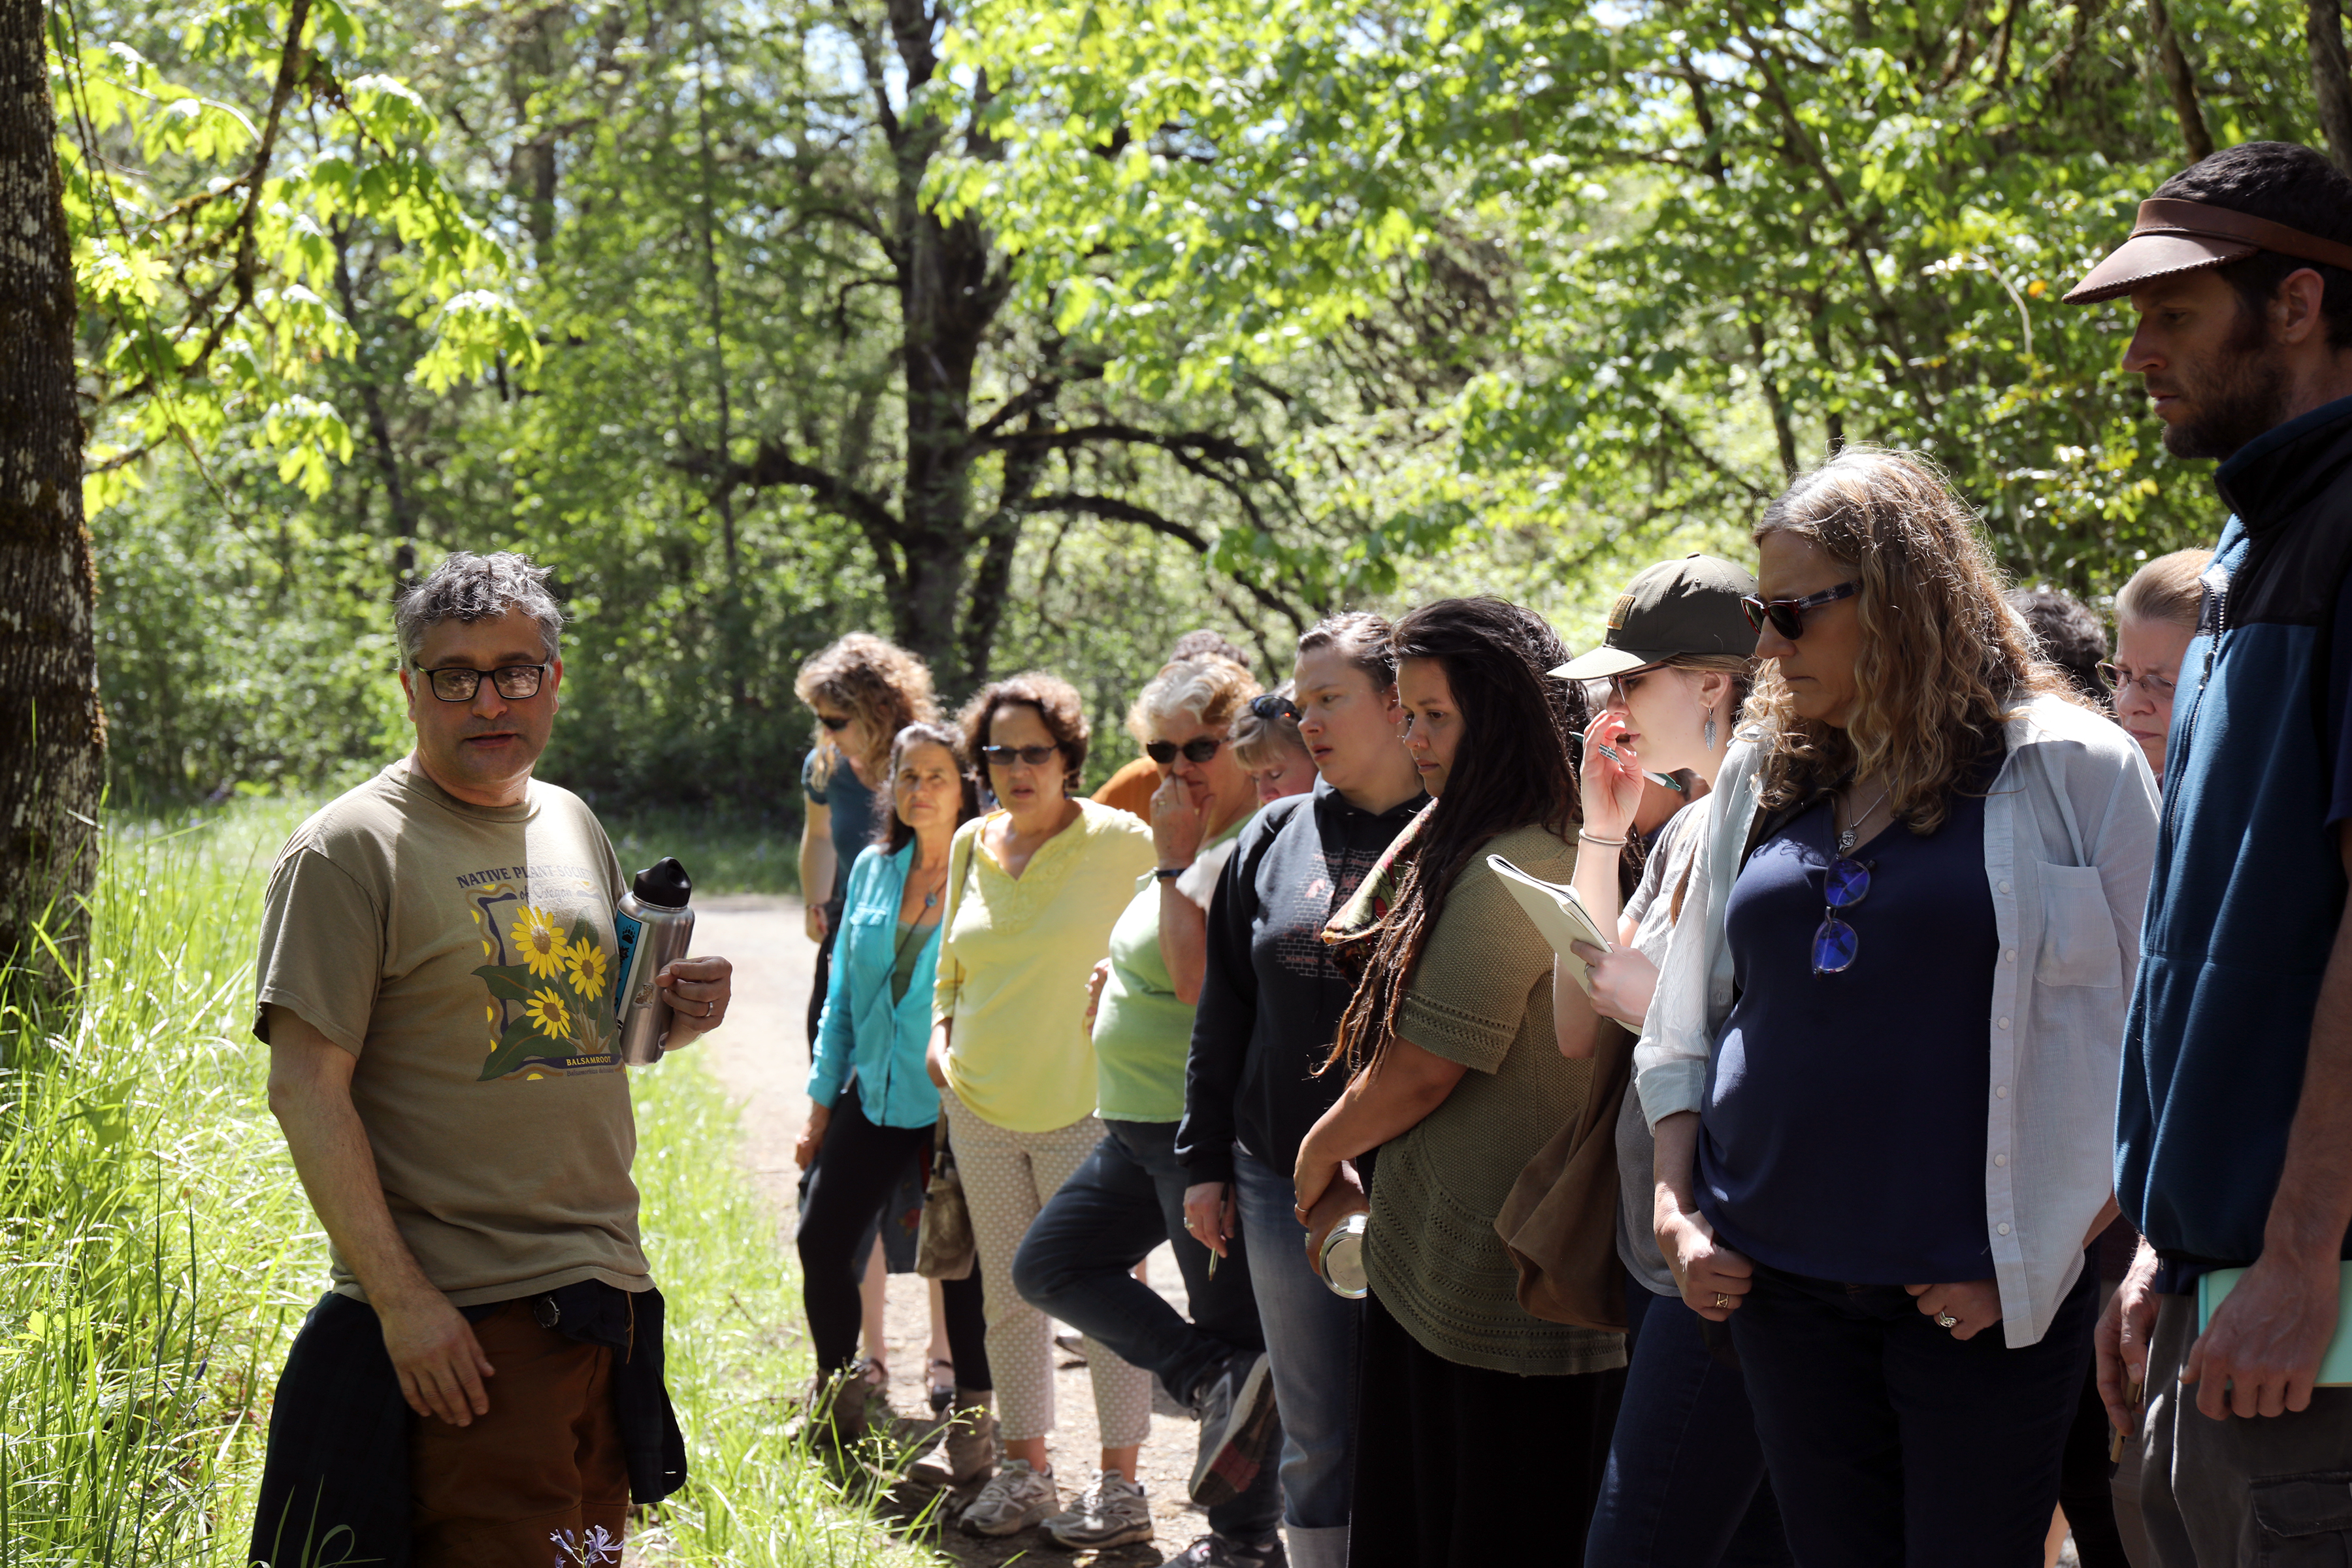 Quality control director, Steven Yaeger, takes participants on a plant identification walk in natural areas in Eugene, Oregon. Identifying plants is important to the botanical trade.